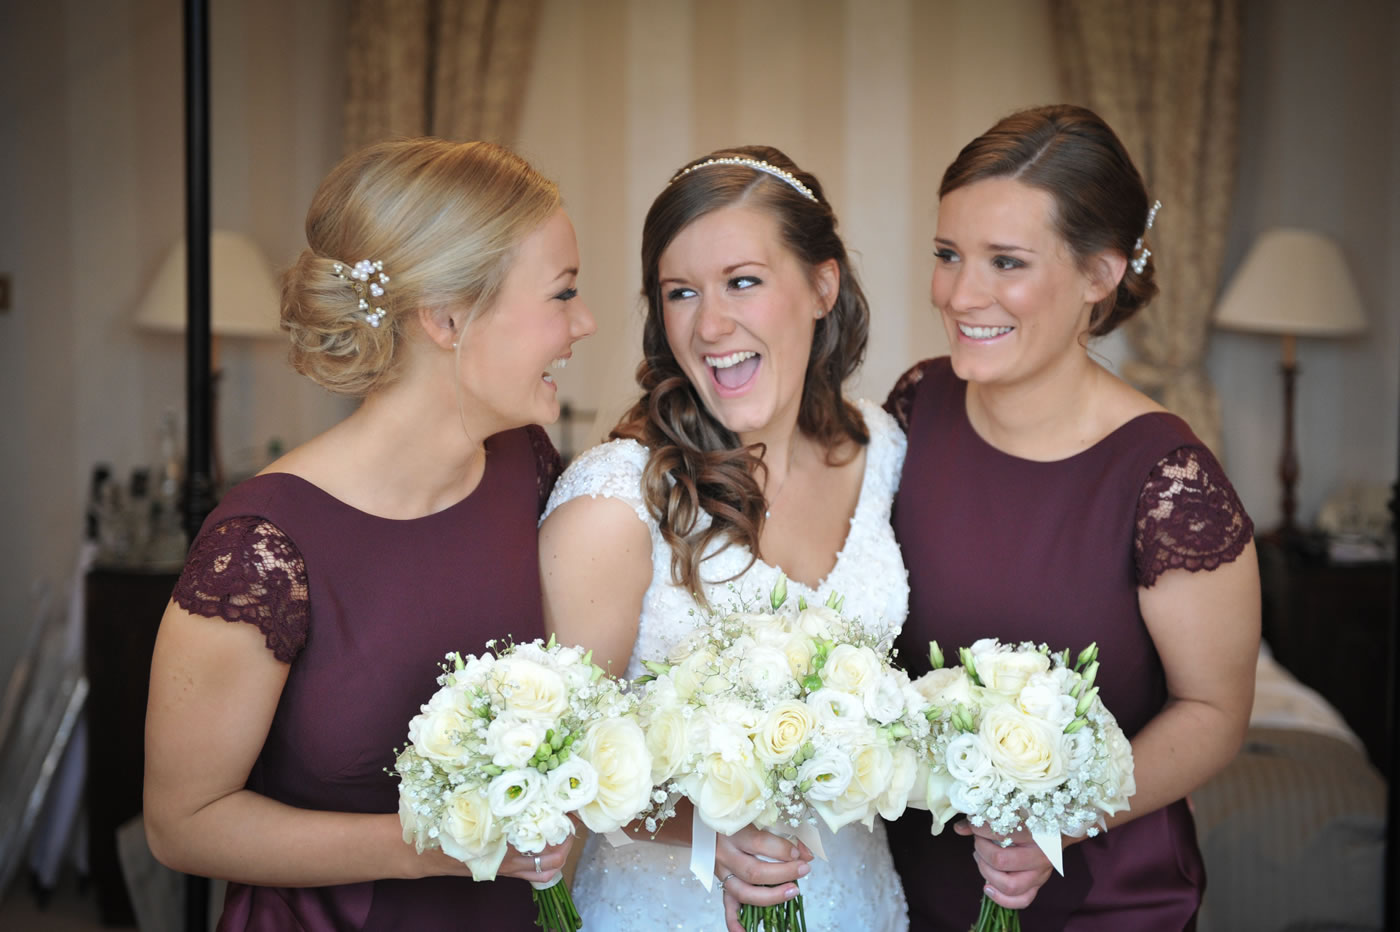 Bride & Bridemaids In Taplow House Hotel Room - Bridal Hair & Makeup By Anabela of Maidenhead, Berkshire